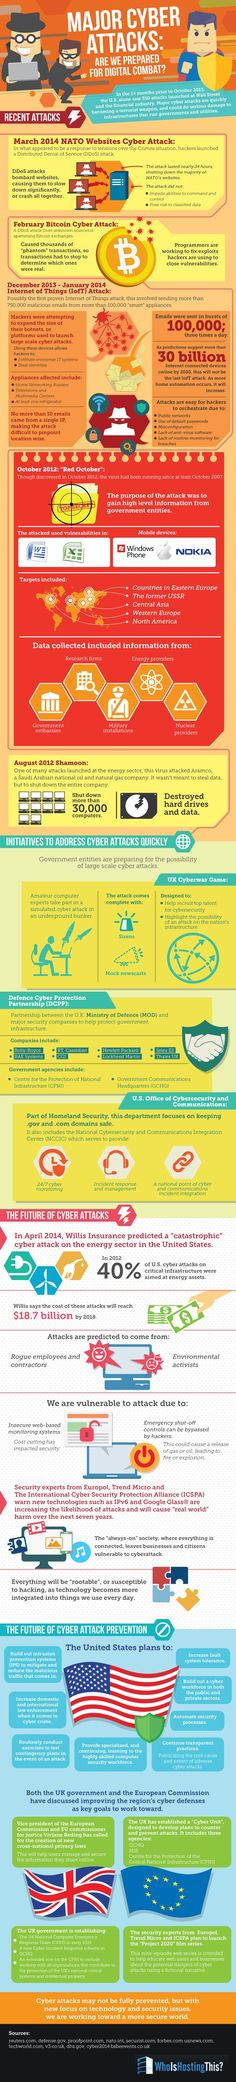 Major Cyber Attacks: Are We Prepared for Digital Combat? #infographic #Cyber…